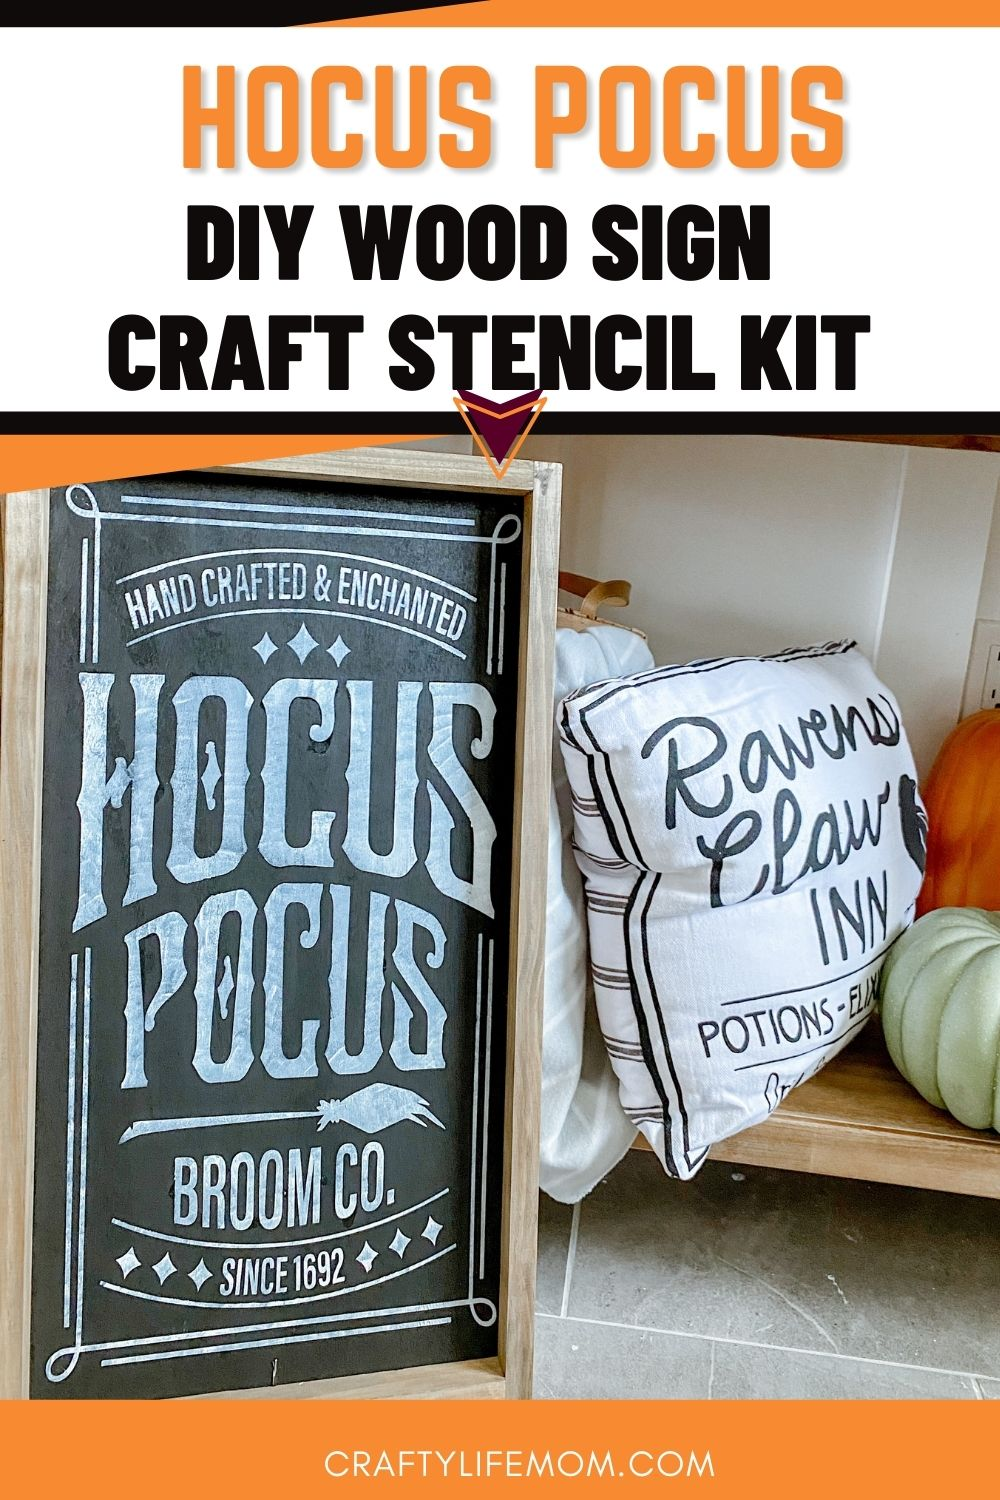 Create this cute Hocus Pocus Wood Sign using this easy to follow wood sign craft kit. This kit comes with everything you need excluding paint to create unique Halloween decor in your home. #halloween #hocuspocus #halloweencraft